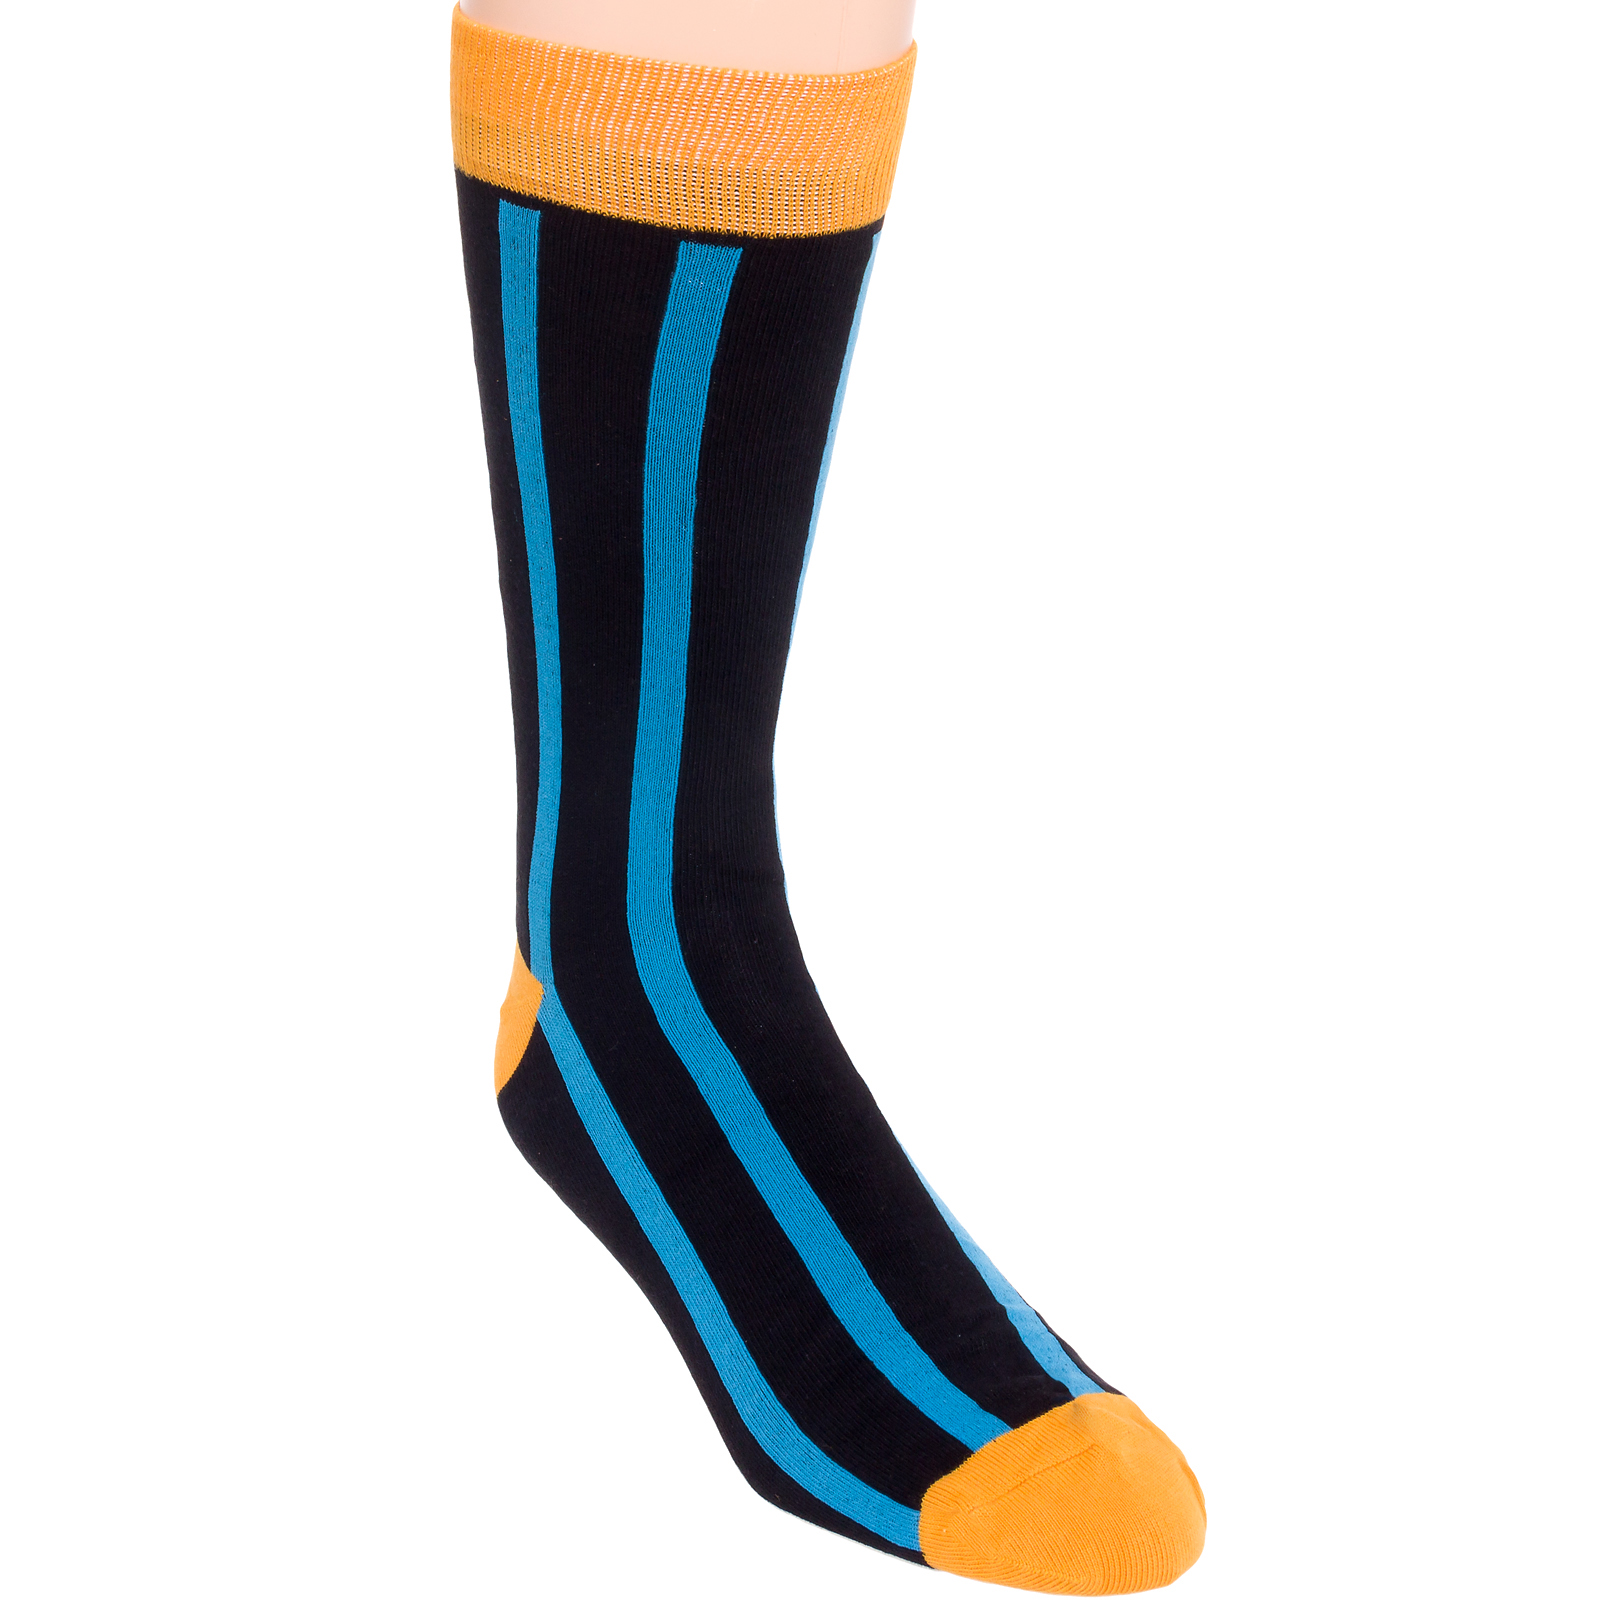 Athletic crew socks are available in an acrylic material, as well as a virgin wool and cashmere blend, a tweed silk blend for boots, an extra fine merino wool blend and more. Whether searching for a special type of fabric in a particular color or just looking for solid color socks without all the patterns and designs, this collection is a trusted blend of both.